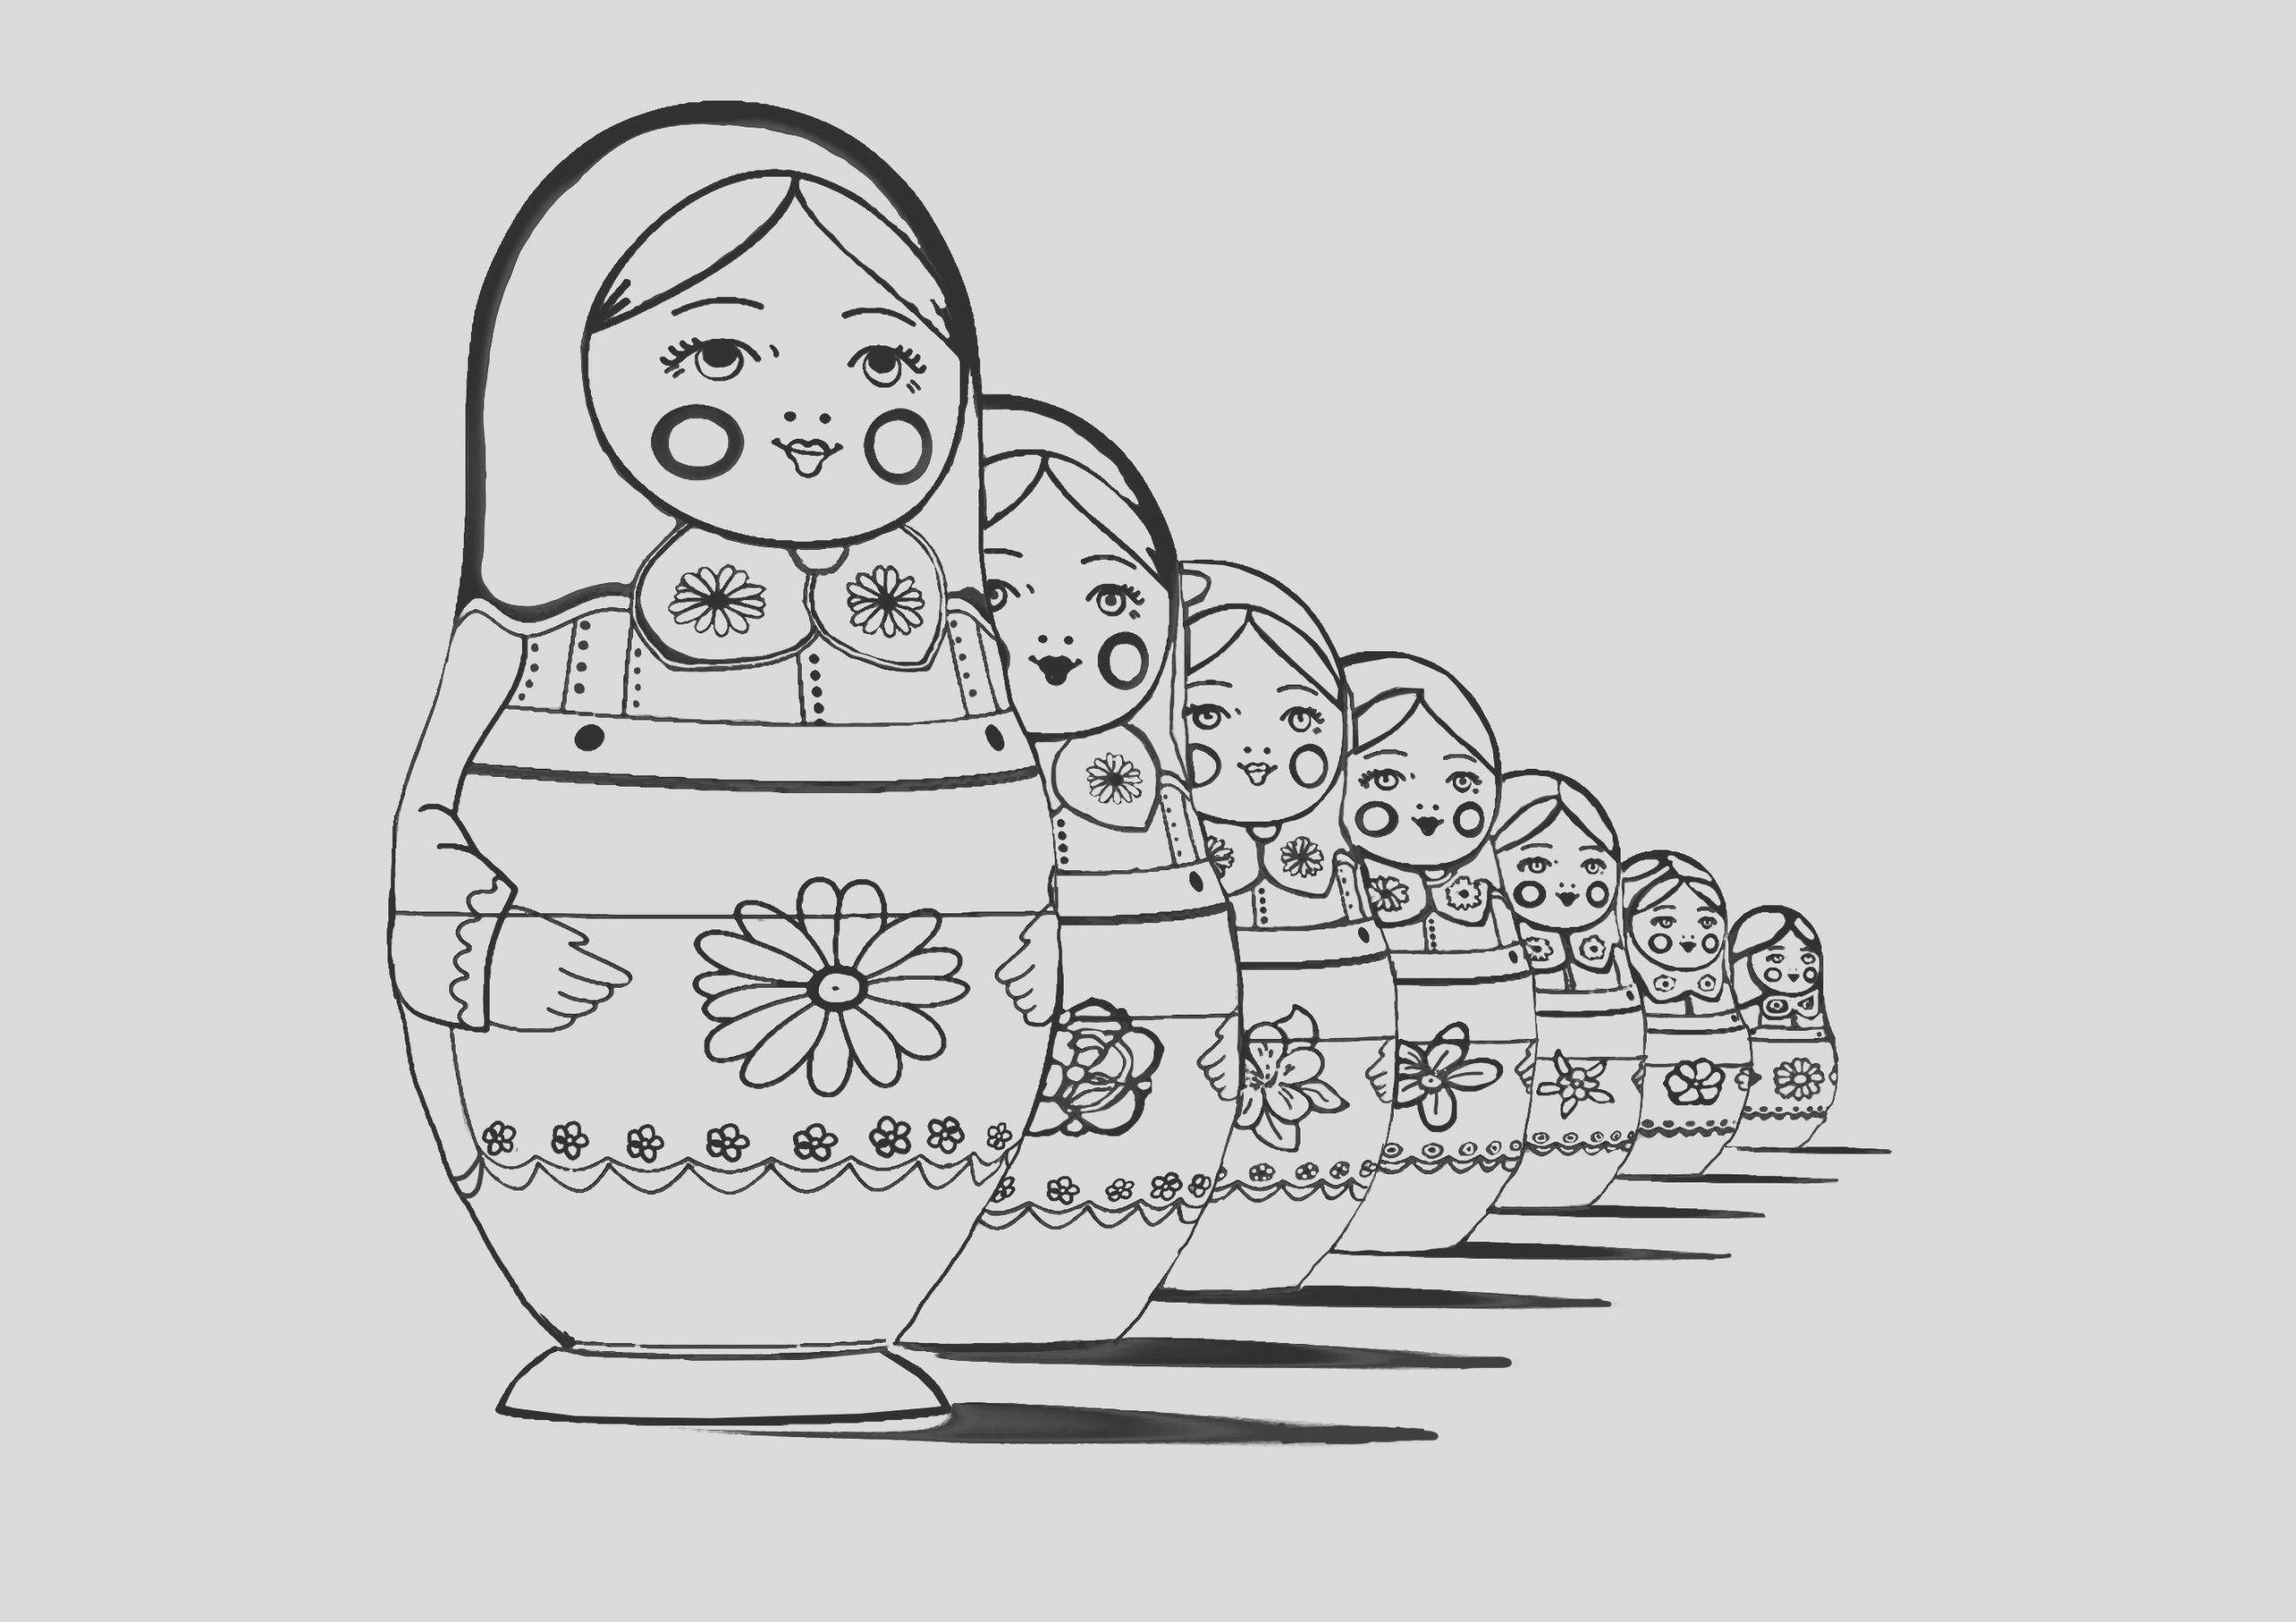 image=russian dolls coloring page adult russian dolls perspective 1